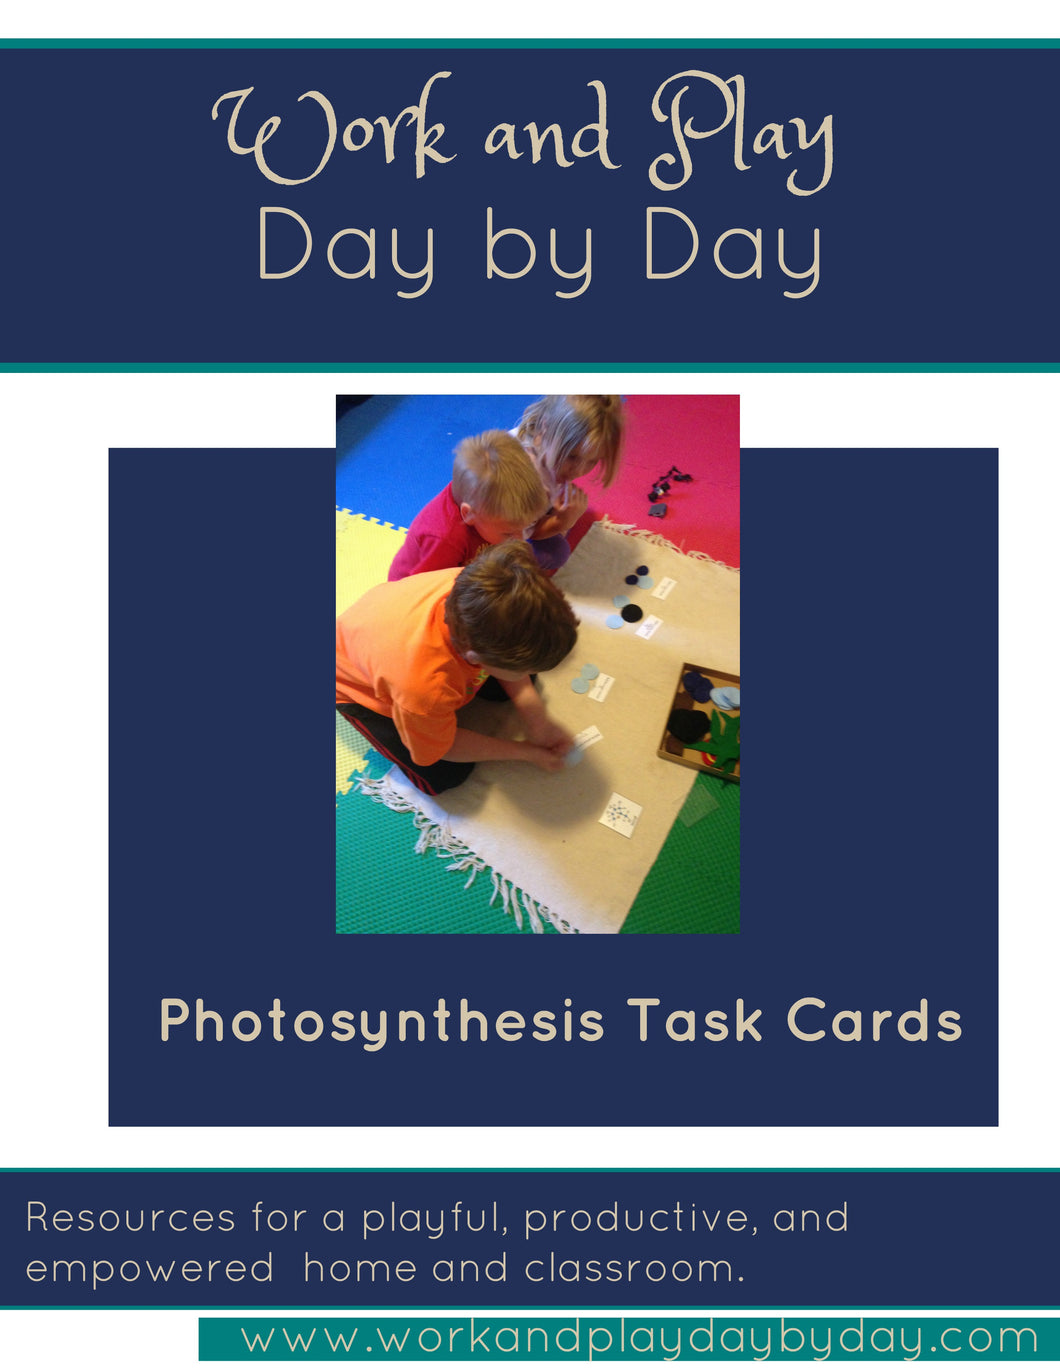 Photosynthesis Materials with Task Cards